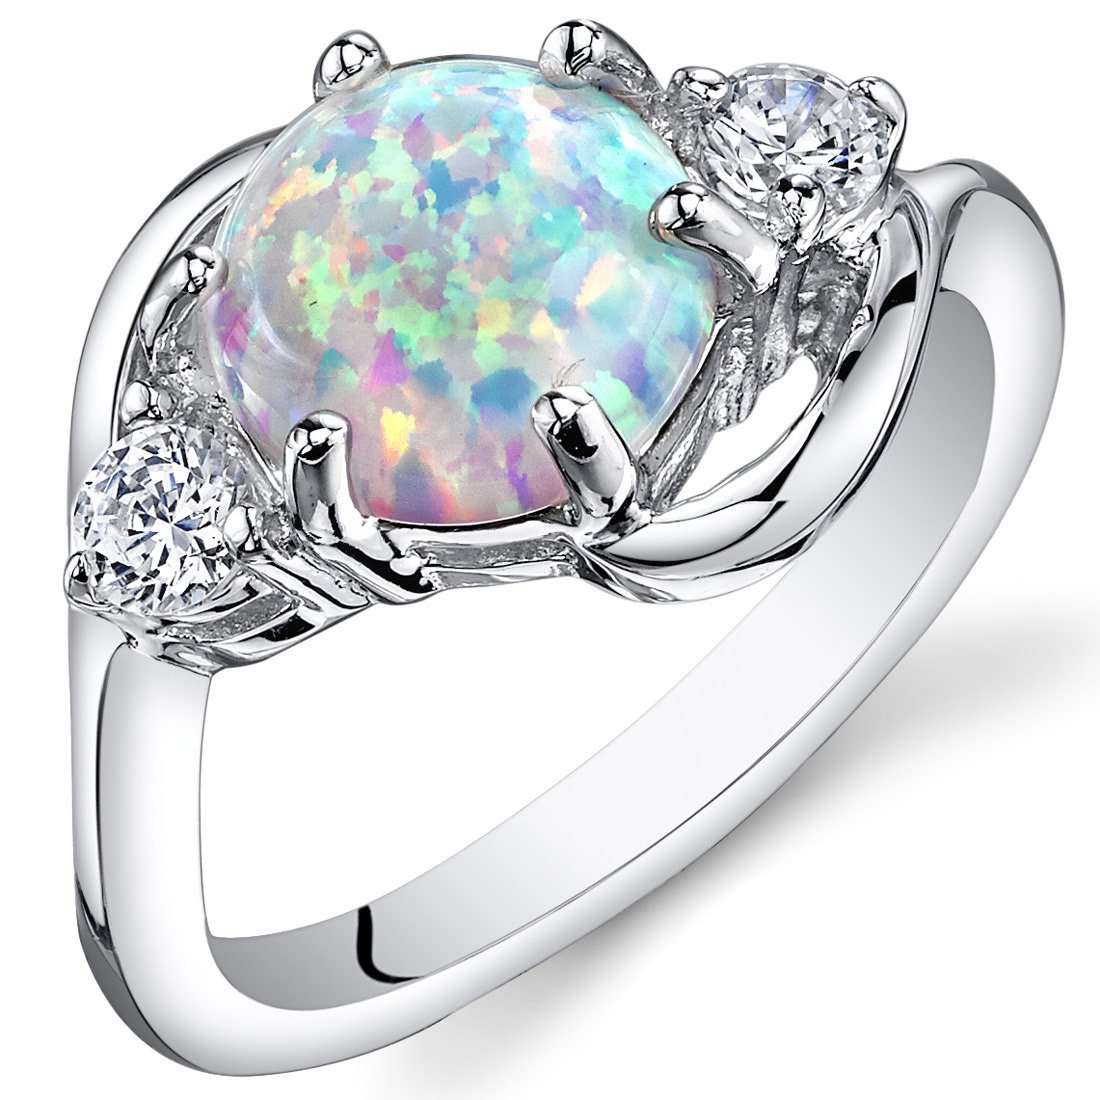 Peora Created White Opal Ring in Sterling Silver, Round Shape, 8mm, 1.75 Carats total, Size 7 by Peora